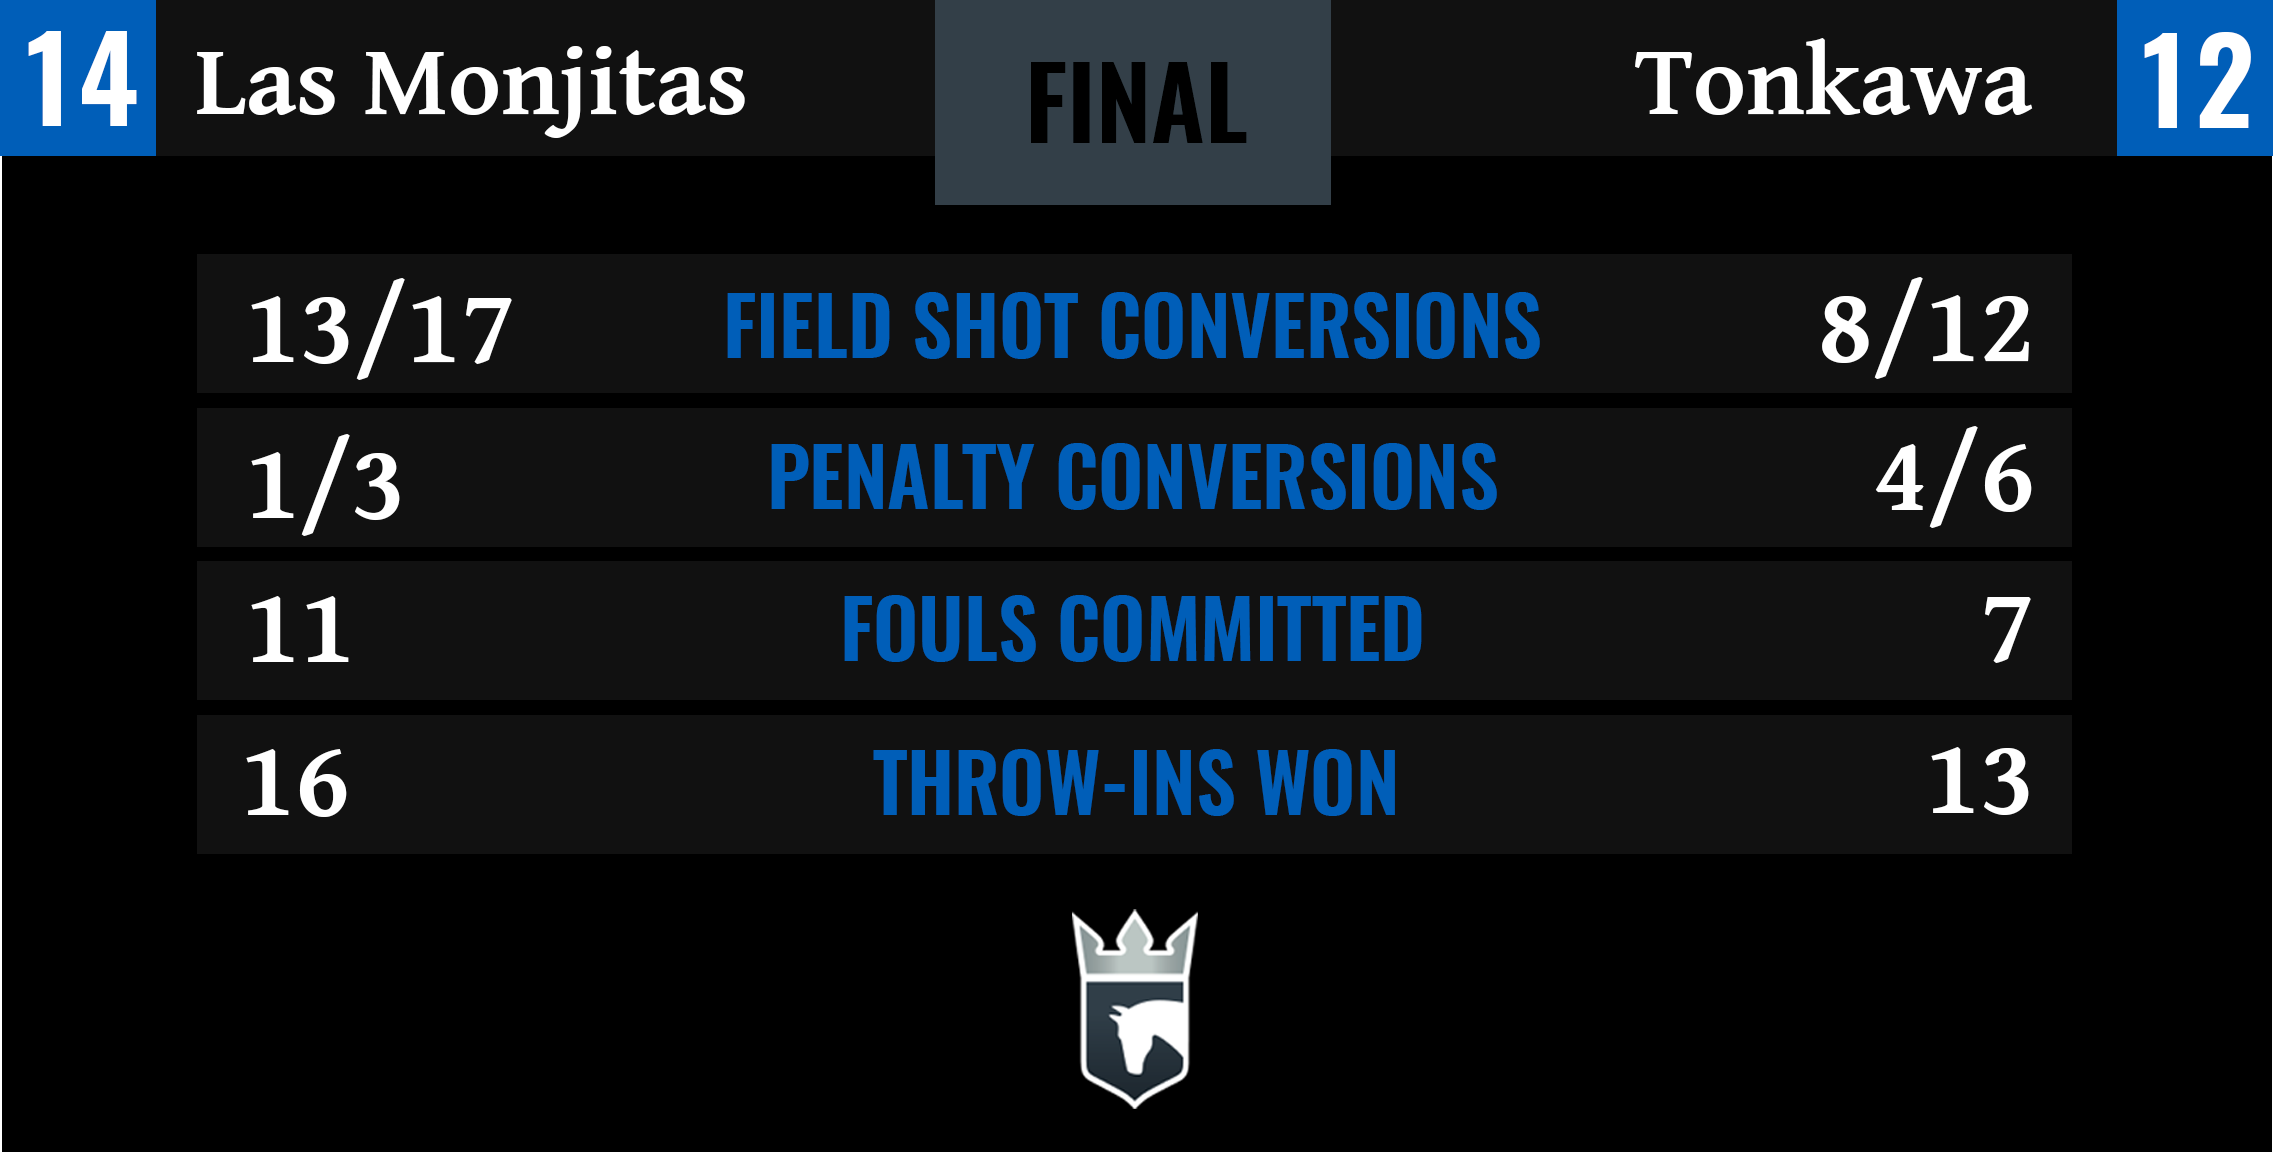 Las Monjitas vs Tonkawa Final Stats